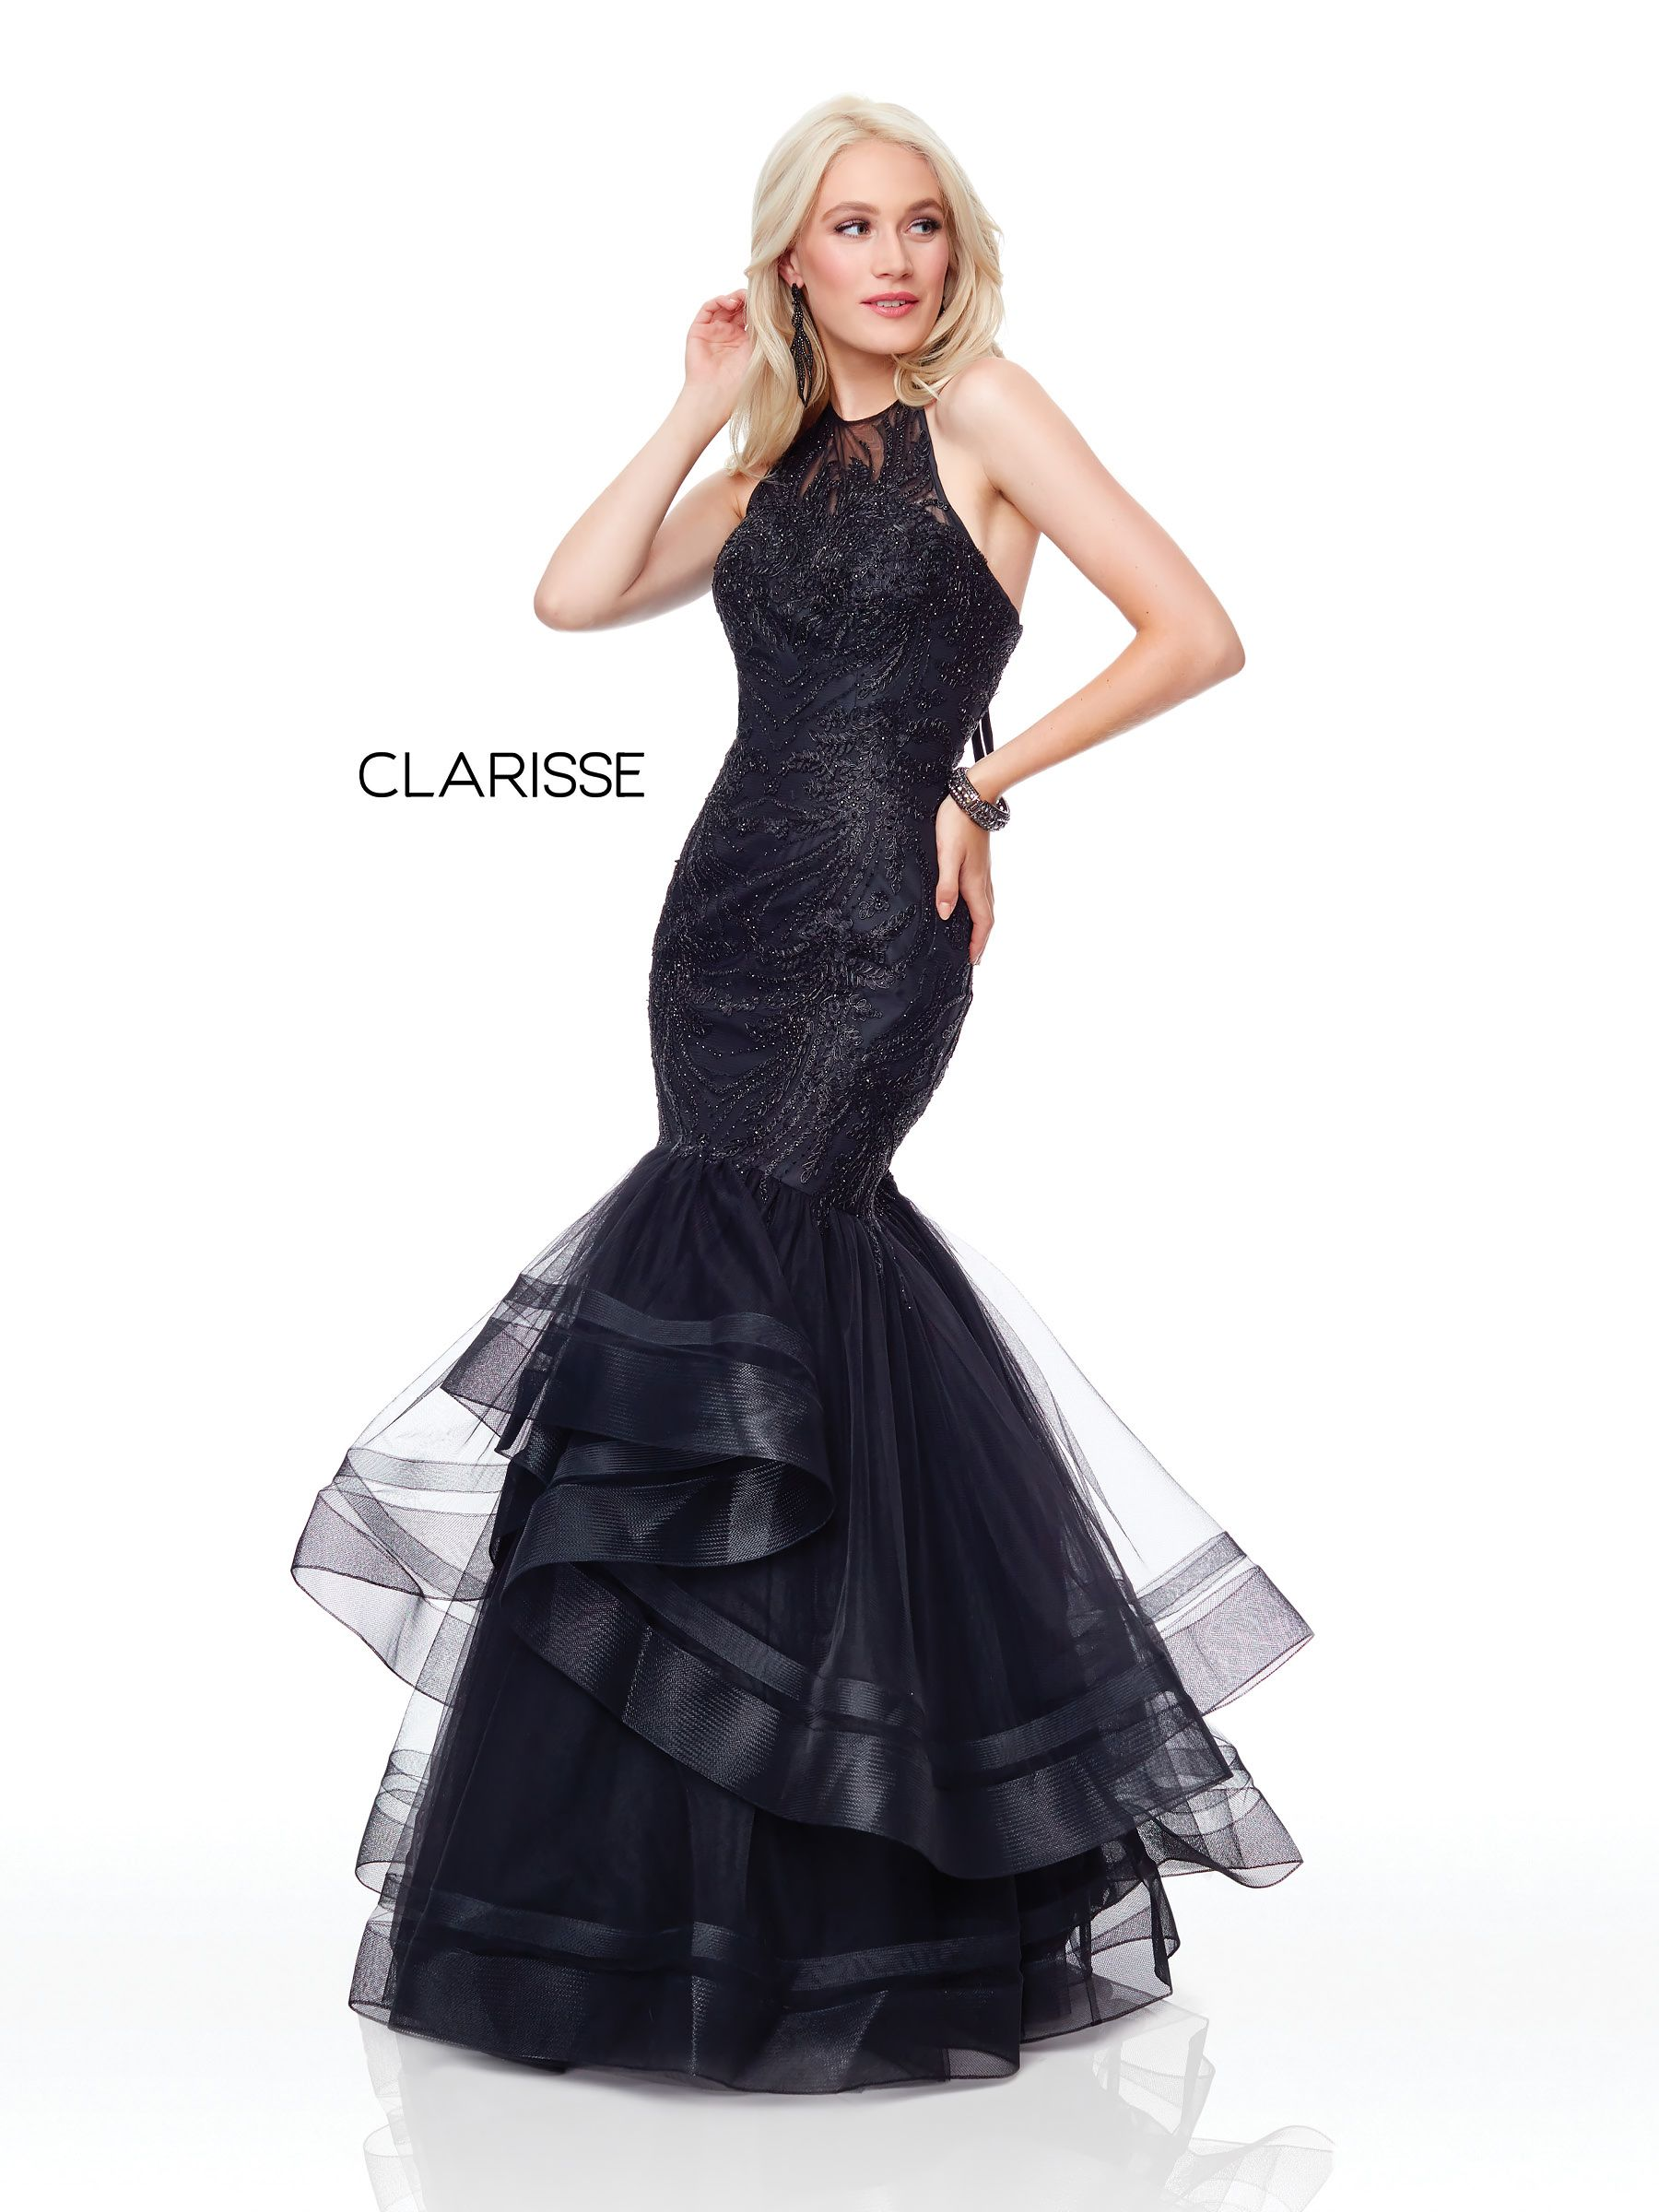 4b14c7201ef 5016 - Black fit to flare prom dress with a lace top and tulle bottom